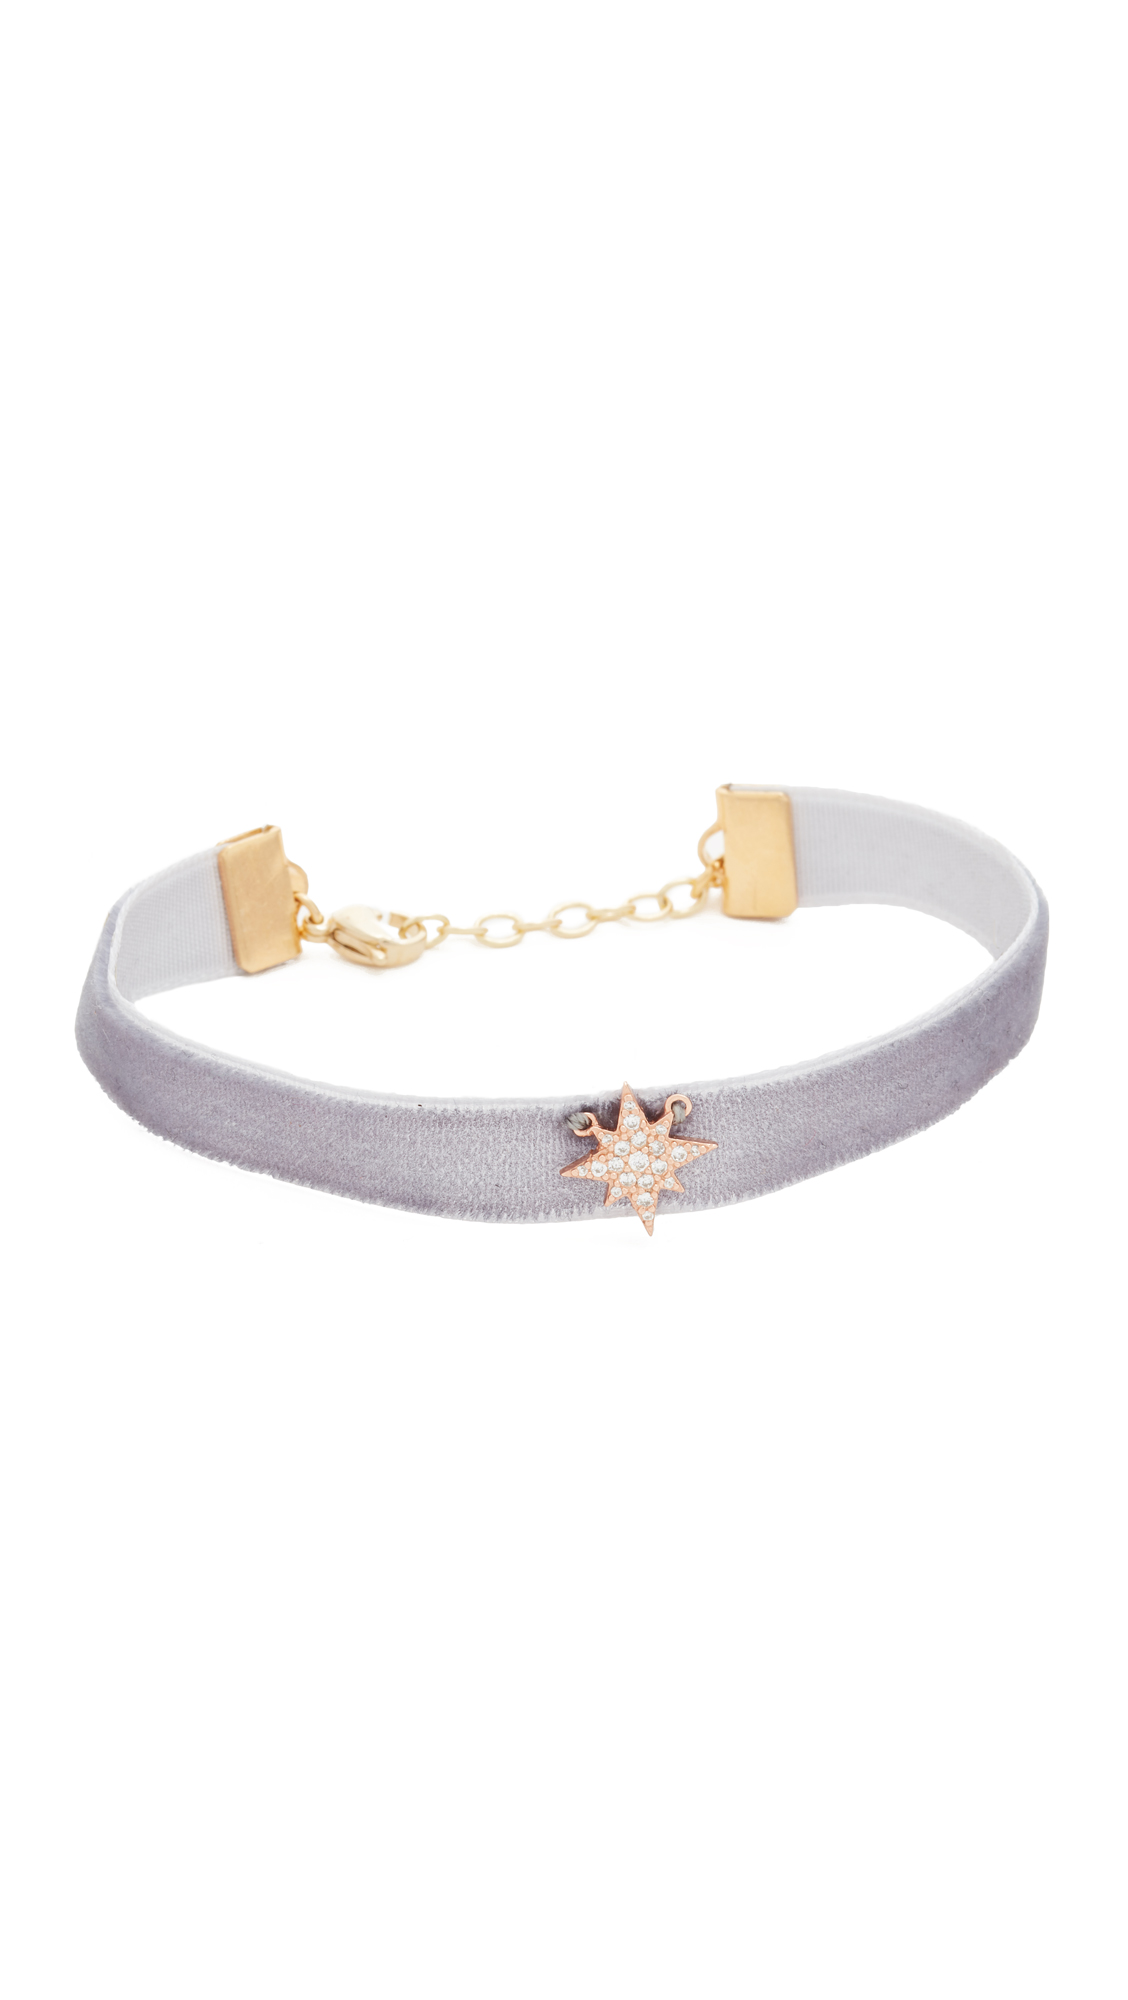 This delicate Shashi bracelet is made from rich velvet and trimmed with a pavé cubic zirconia studded star charm. Lobster claw clasp. Adjustable length. Made in the USA. Measurements Width: 0.5in / 1cm Length: 7in / 18cm. Available